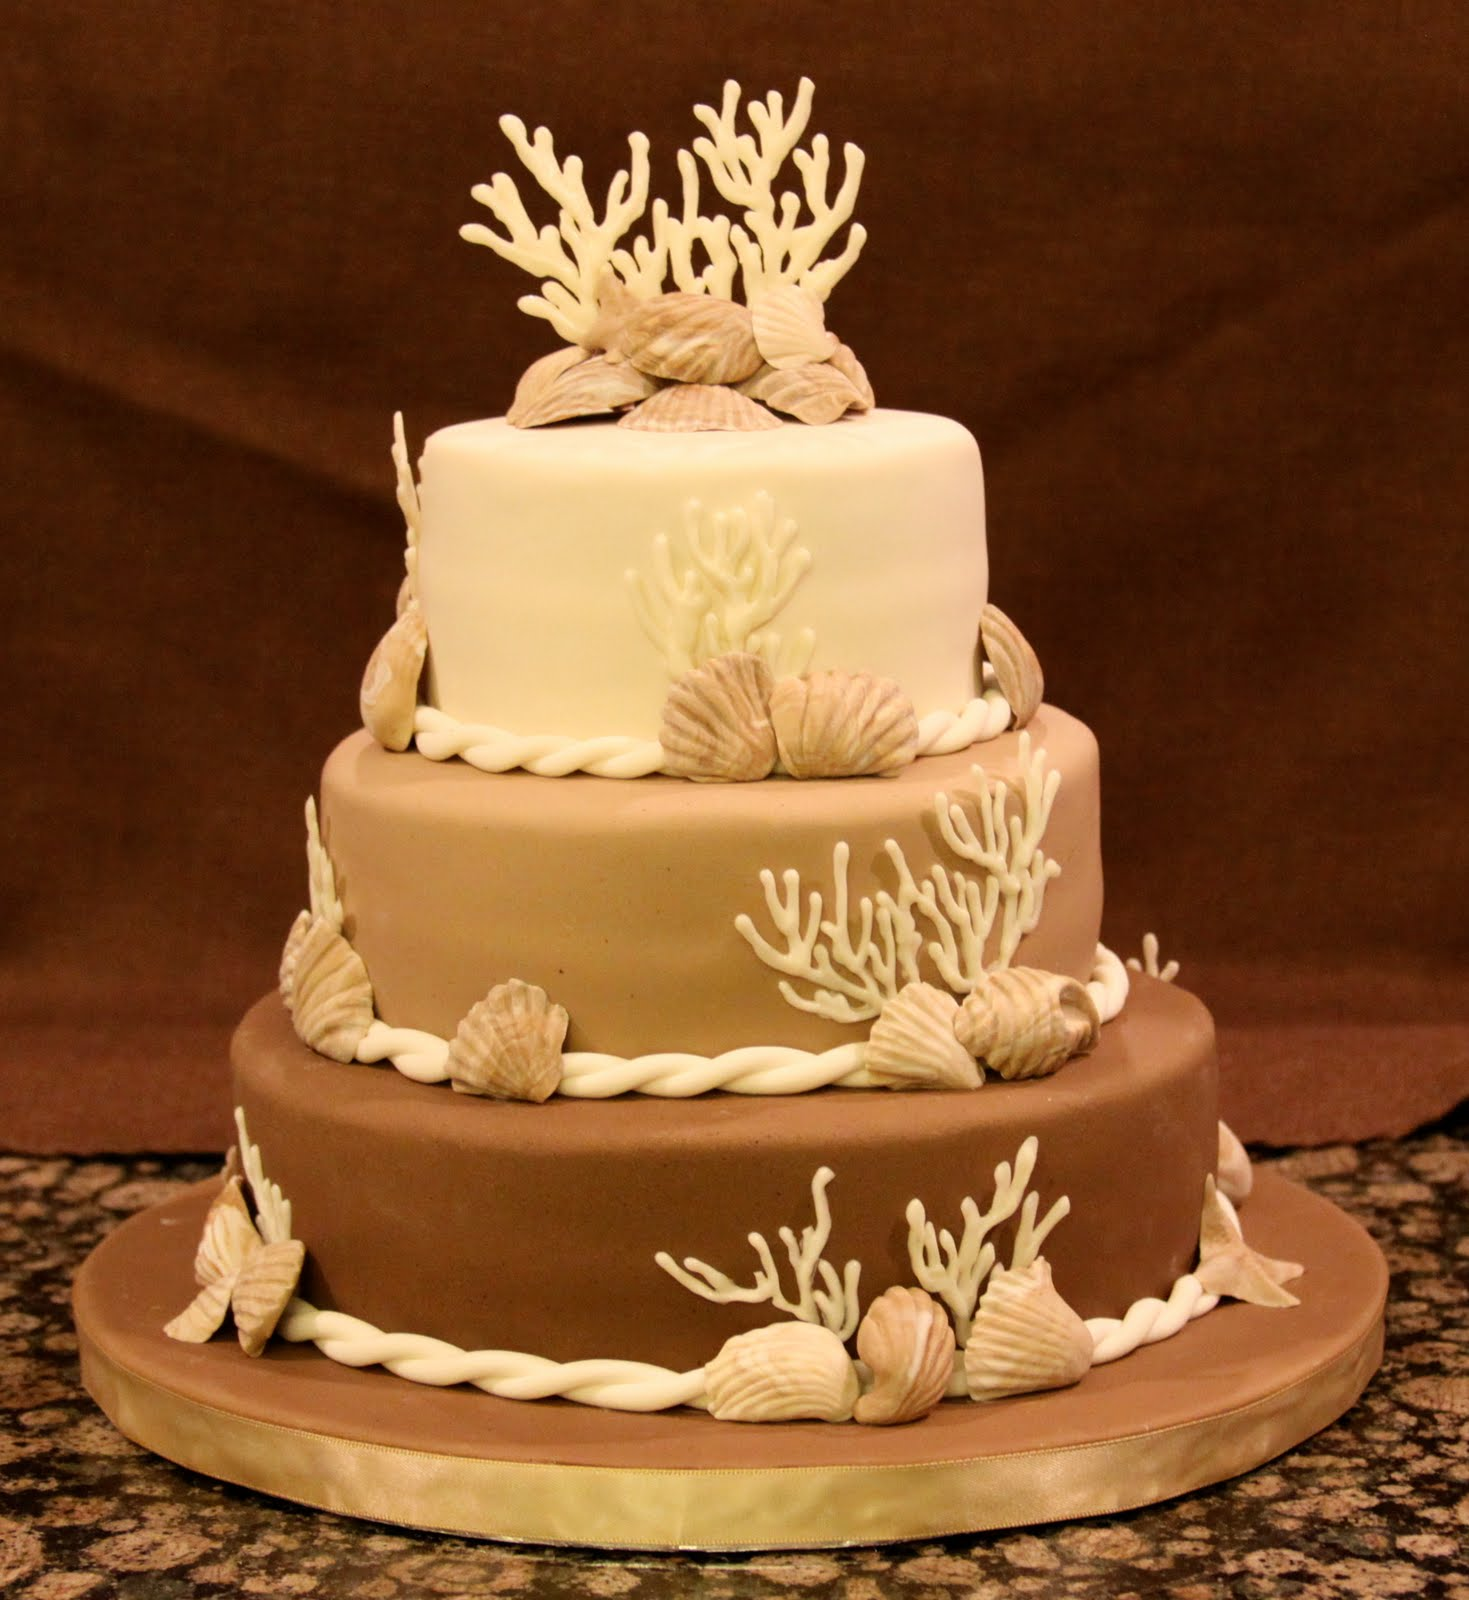 Engagement Party Cake Images : .: Beach Engagement Party Cake